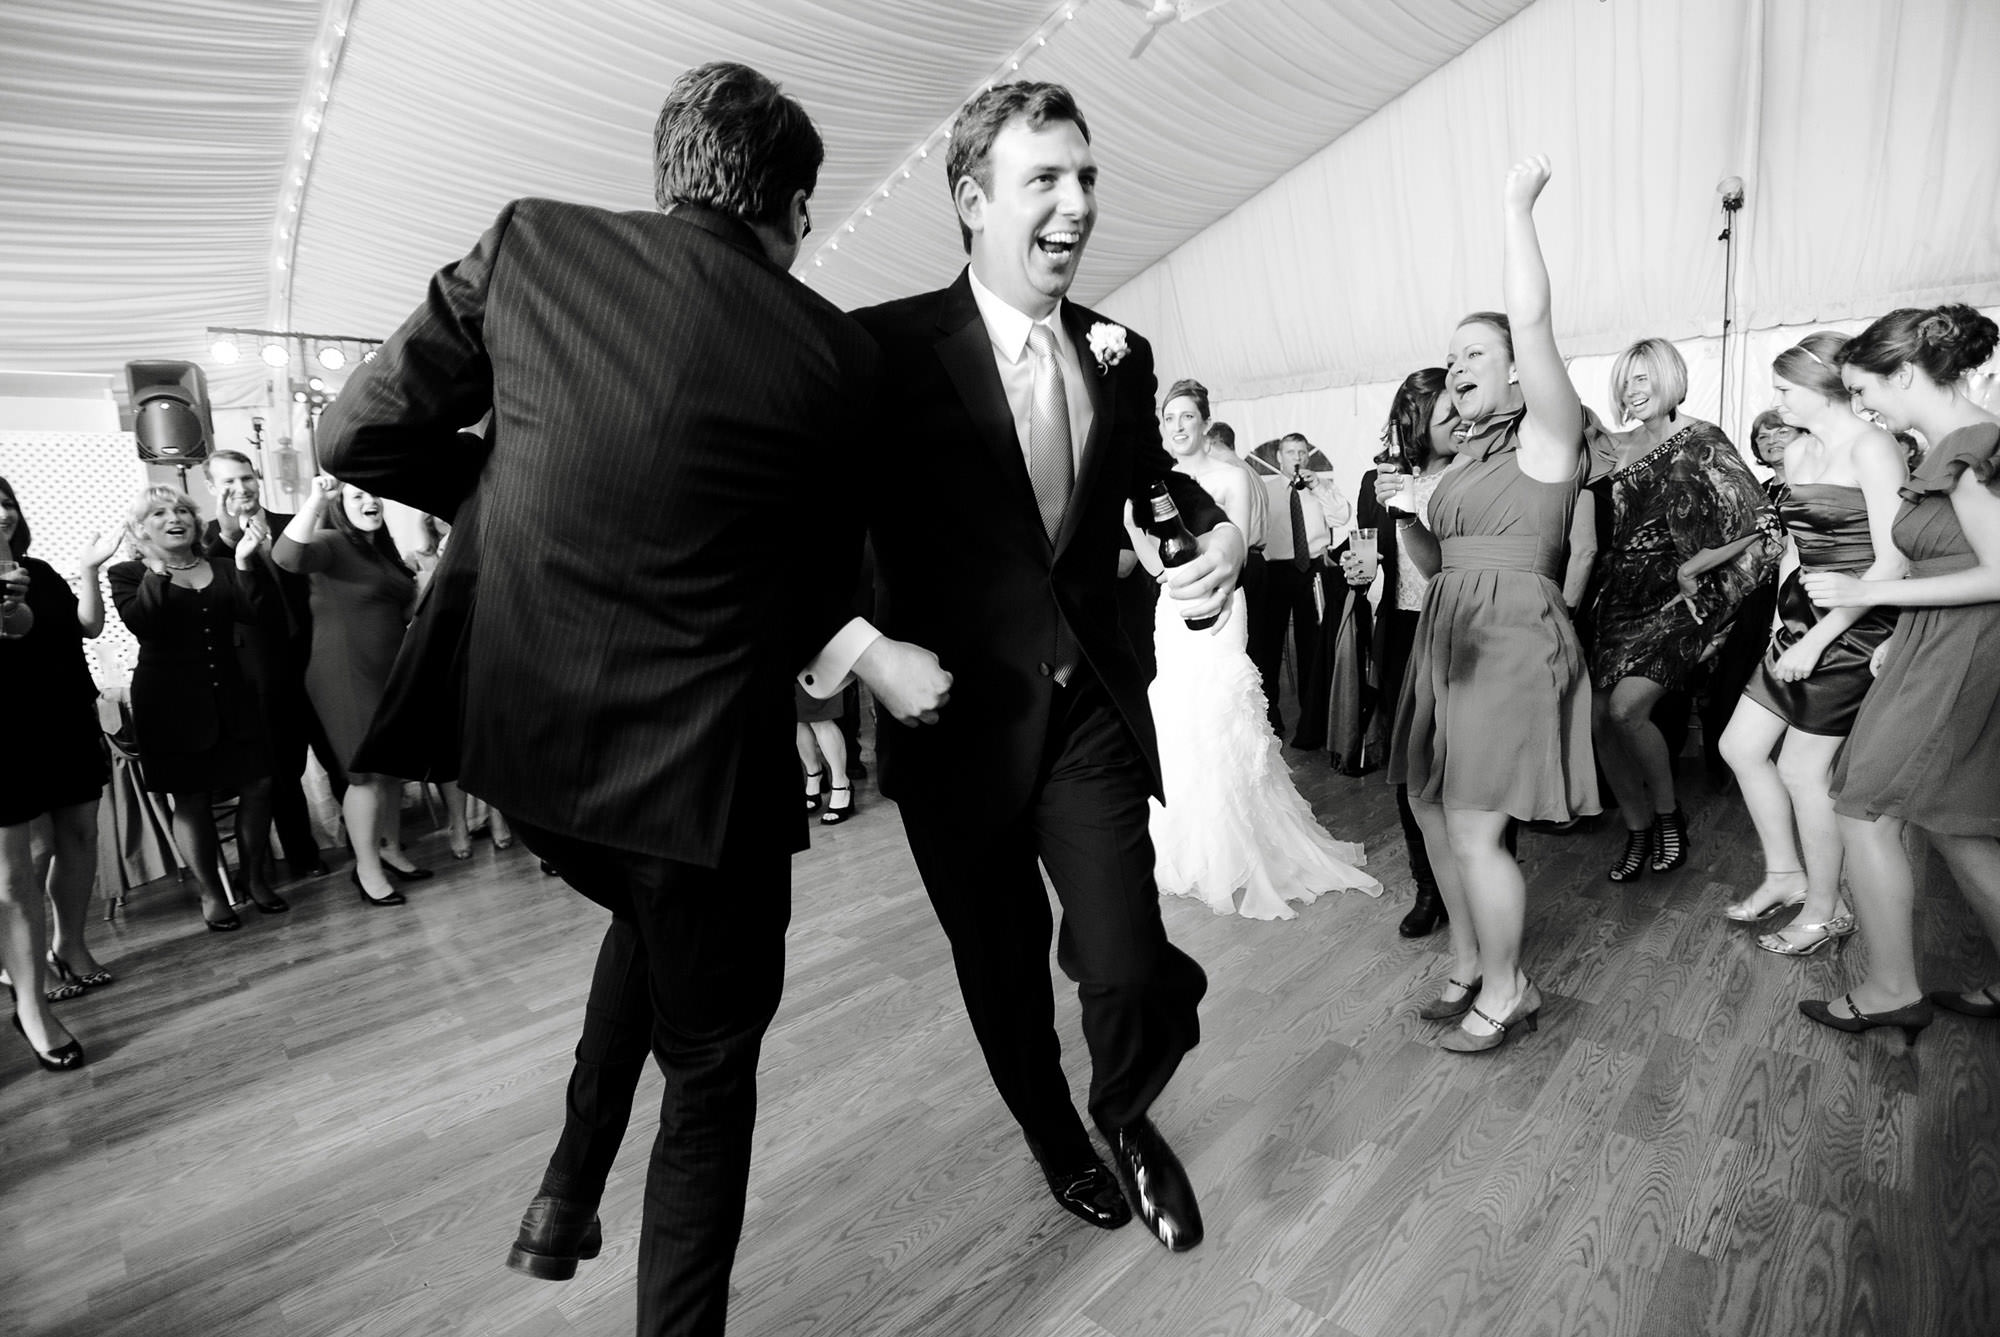 The groom dances during the reception.